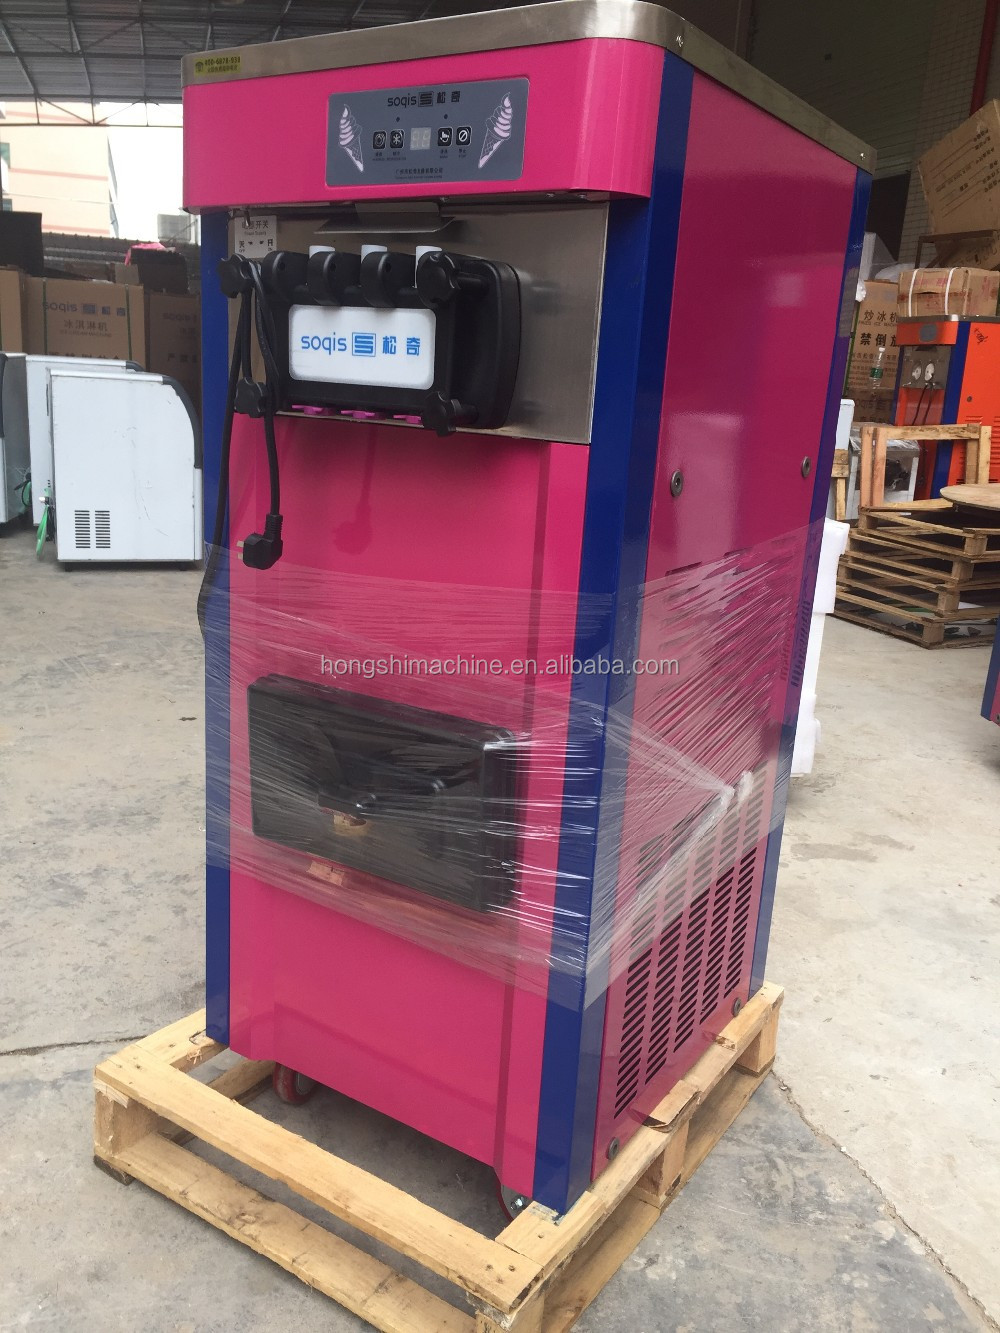 Three colors best price soft ice cream machine price / ice cream maker machine